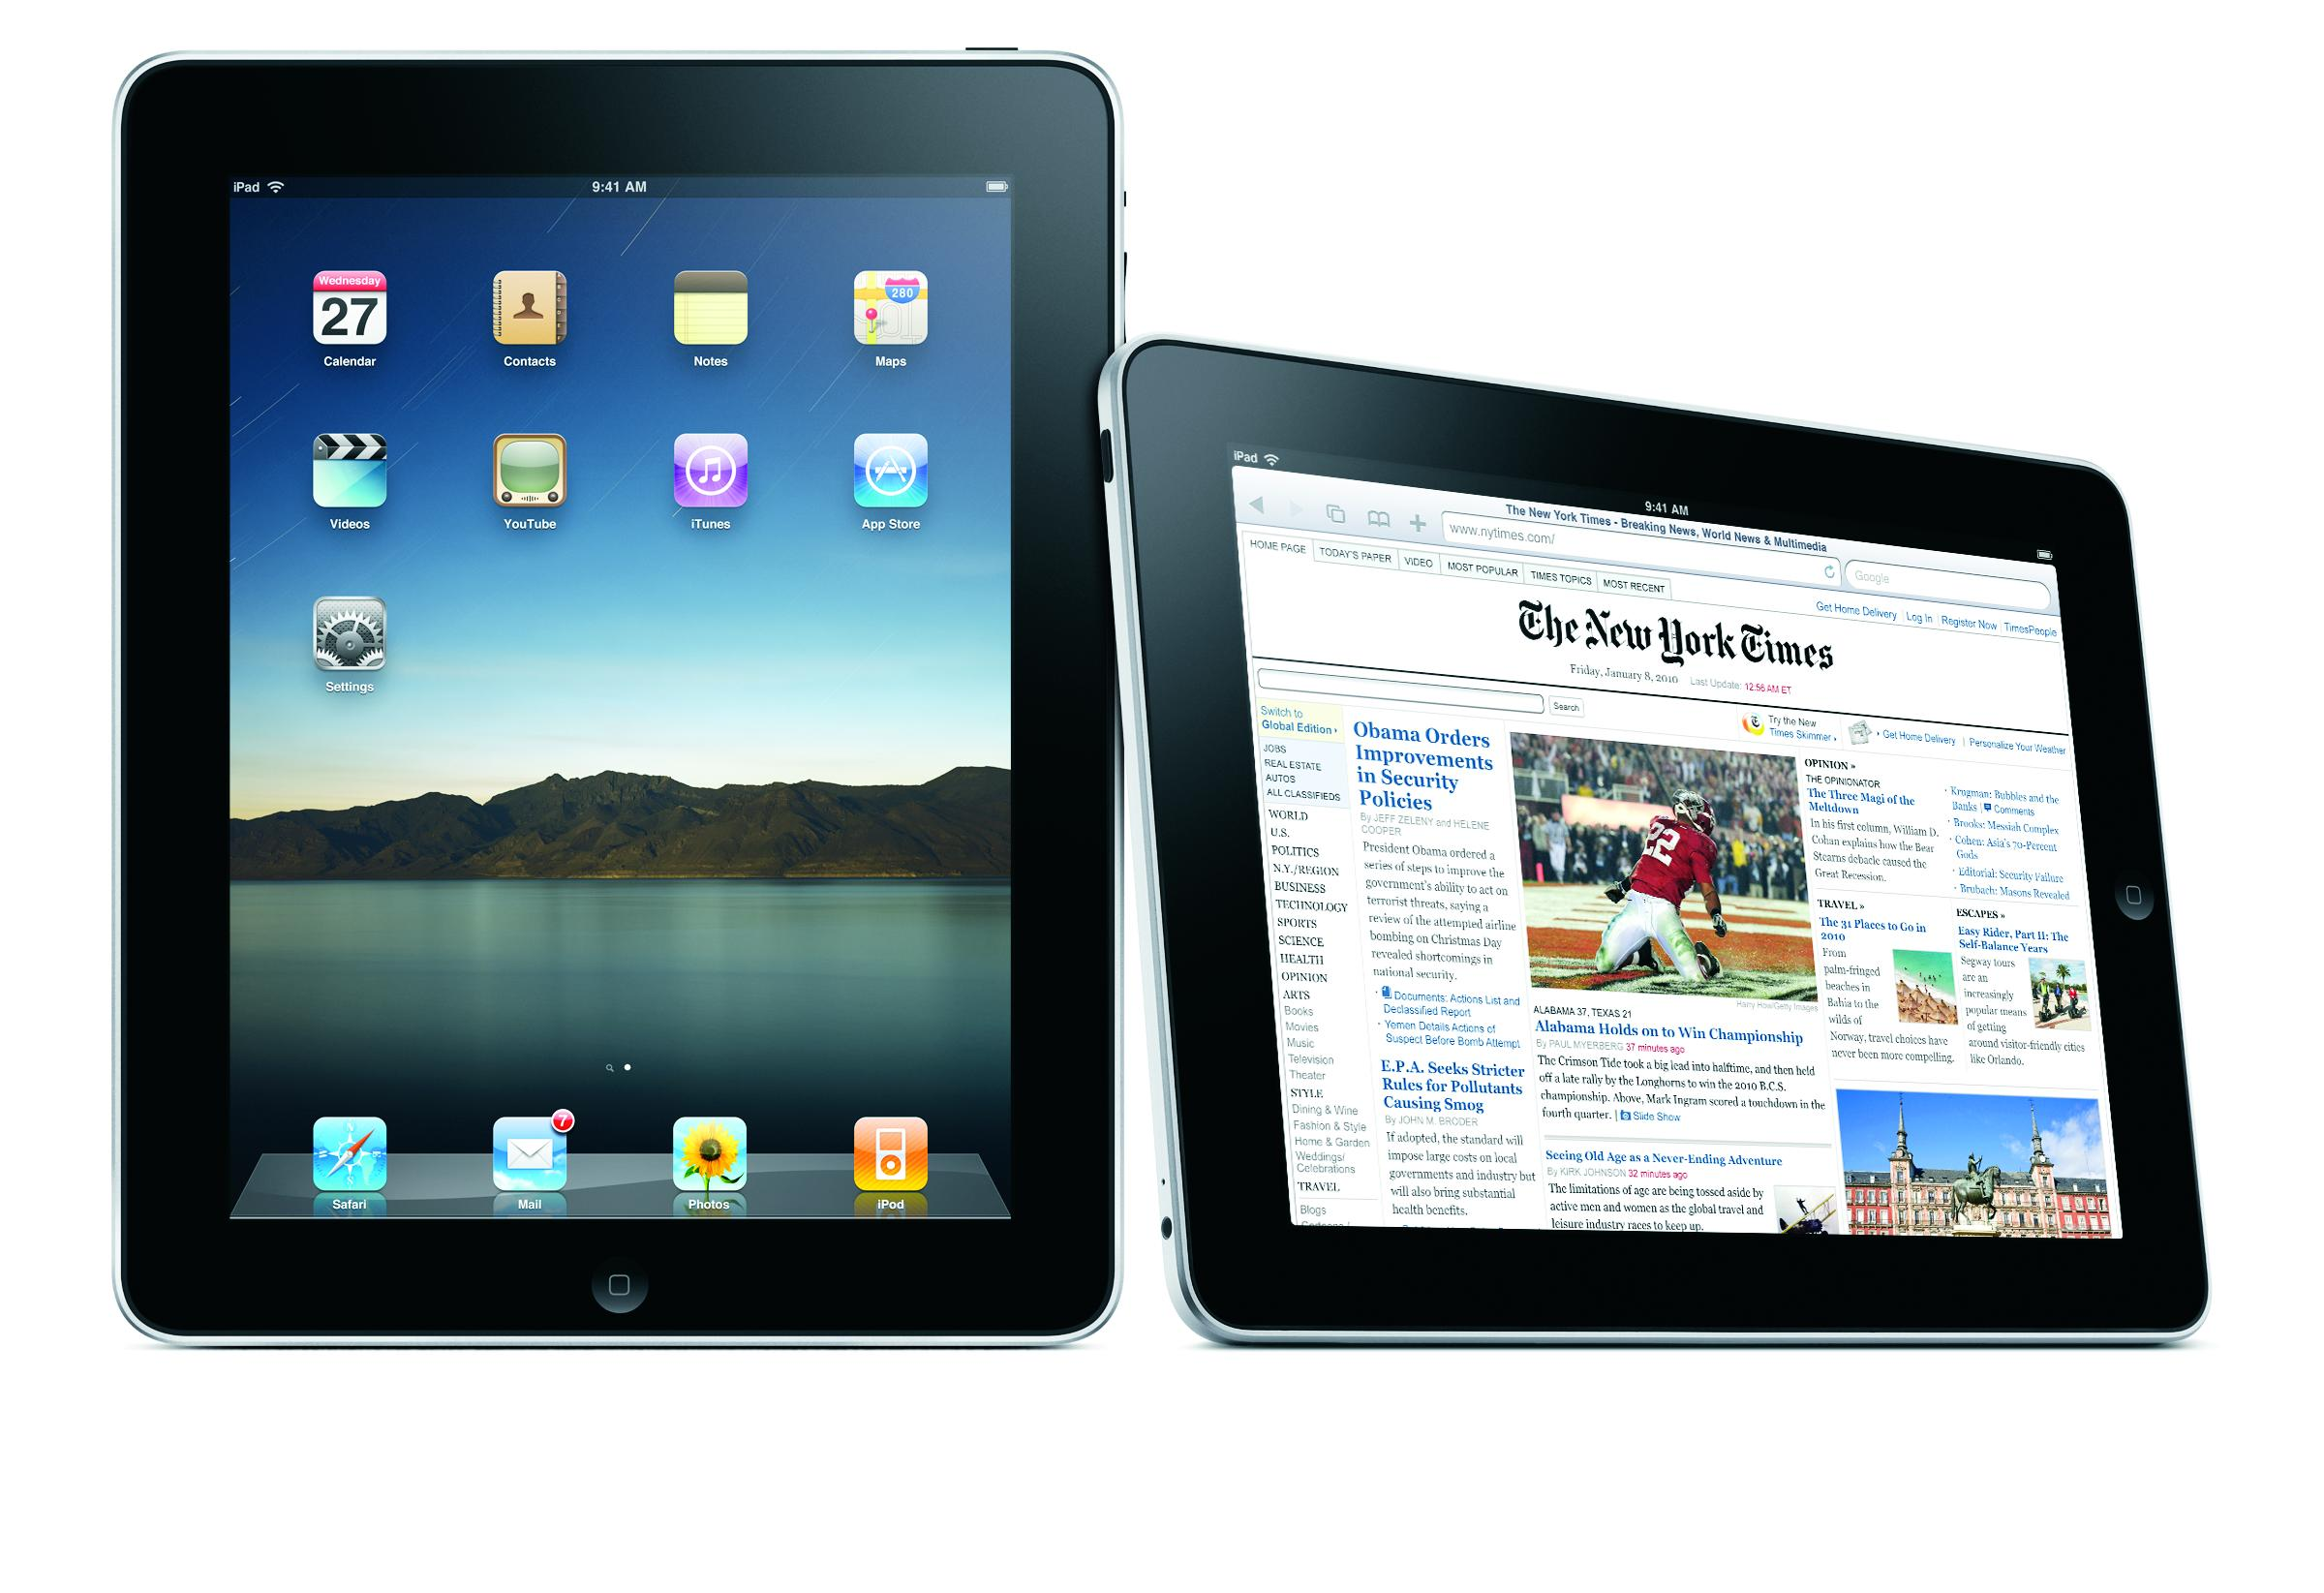 iPad - Image Courtesy of Apple